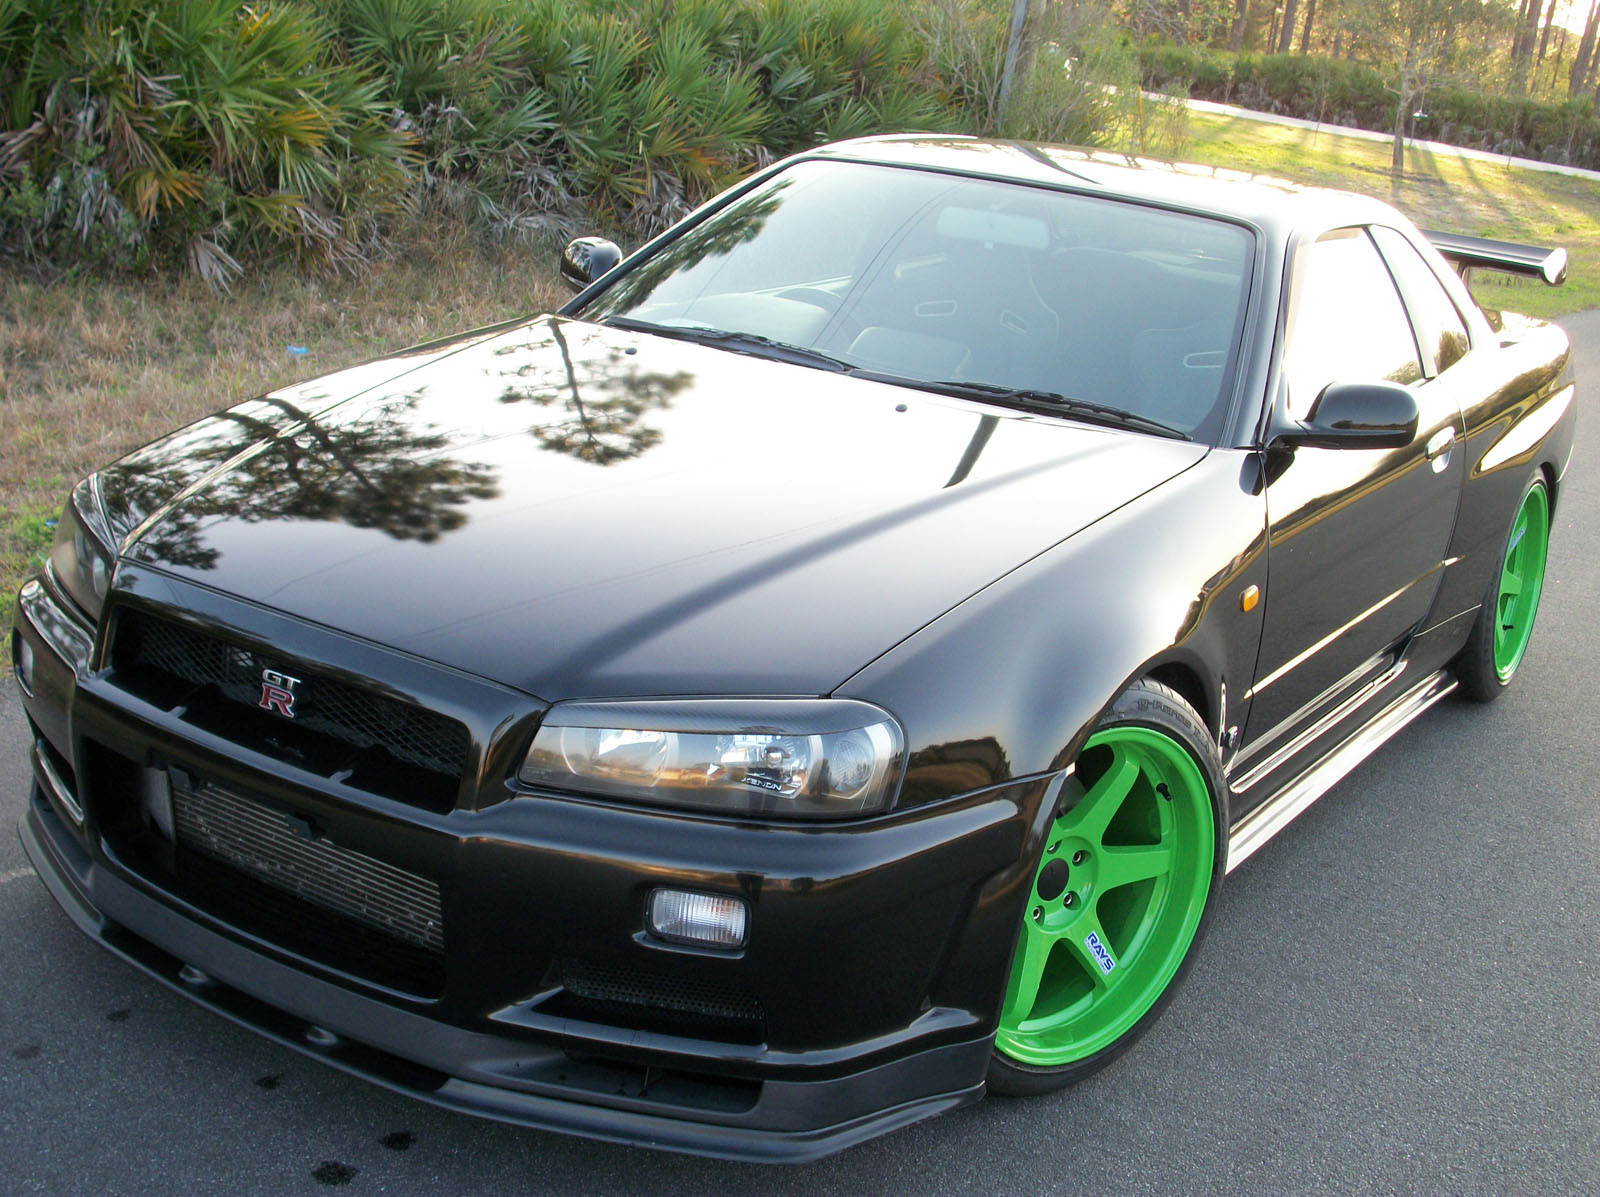 gtr carolina skyline ruth nissan for north sale nismo